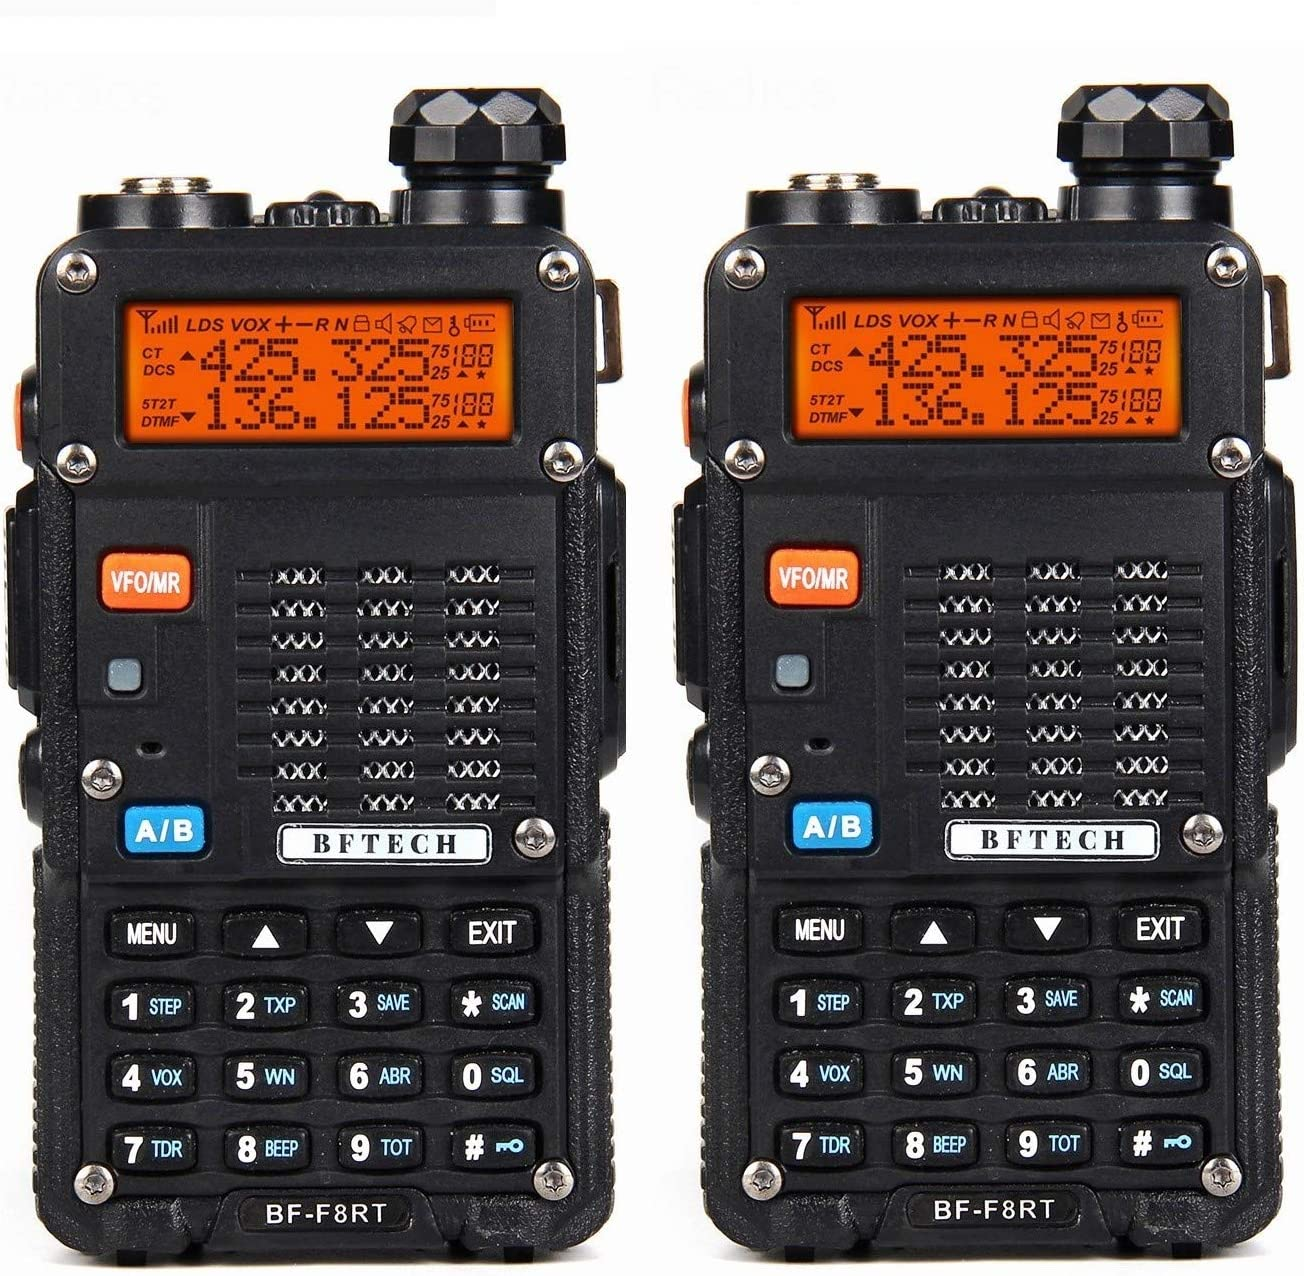 BFTECH BF-F8RT BF-F8 3rd Gen 8-Watt Dual Band Two-Way Radio 136-174Mhz VHF 400-520Mhz UHF with High Gain NA-772R Stretchable Antenna 2-pcs